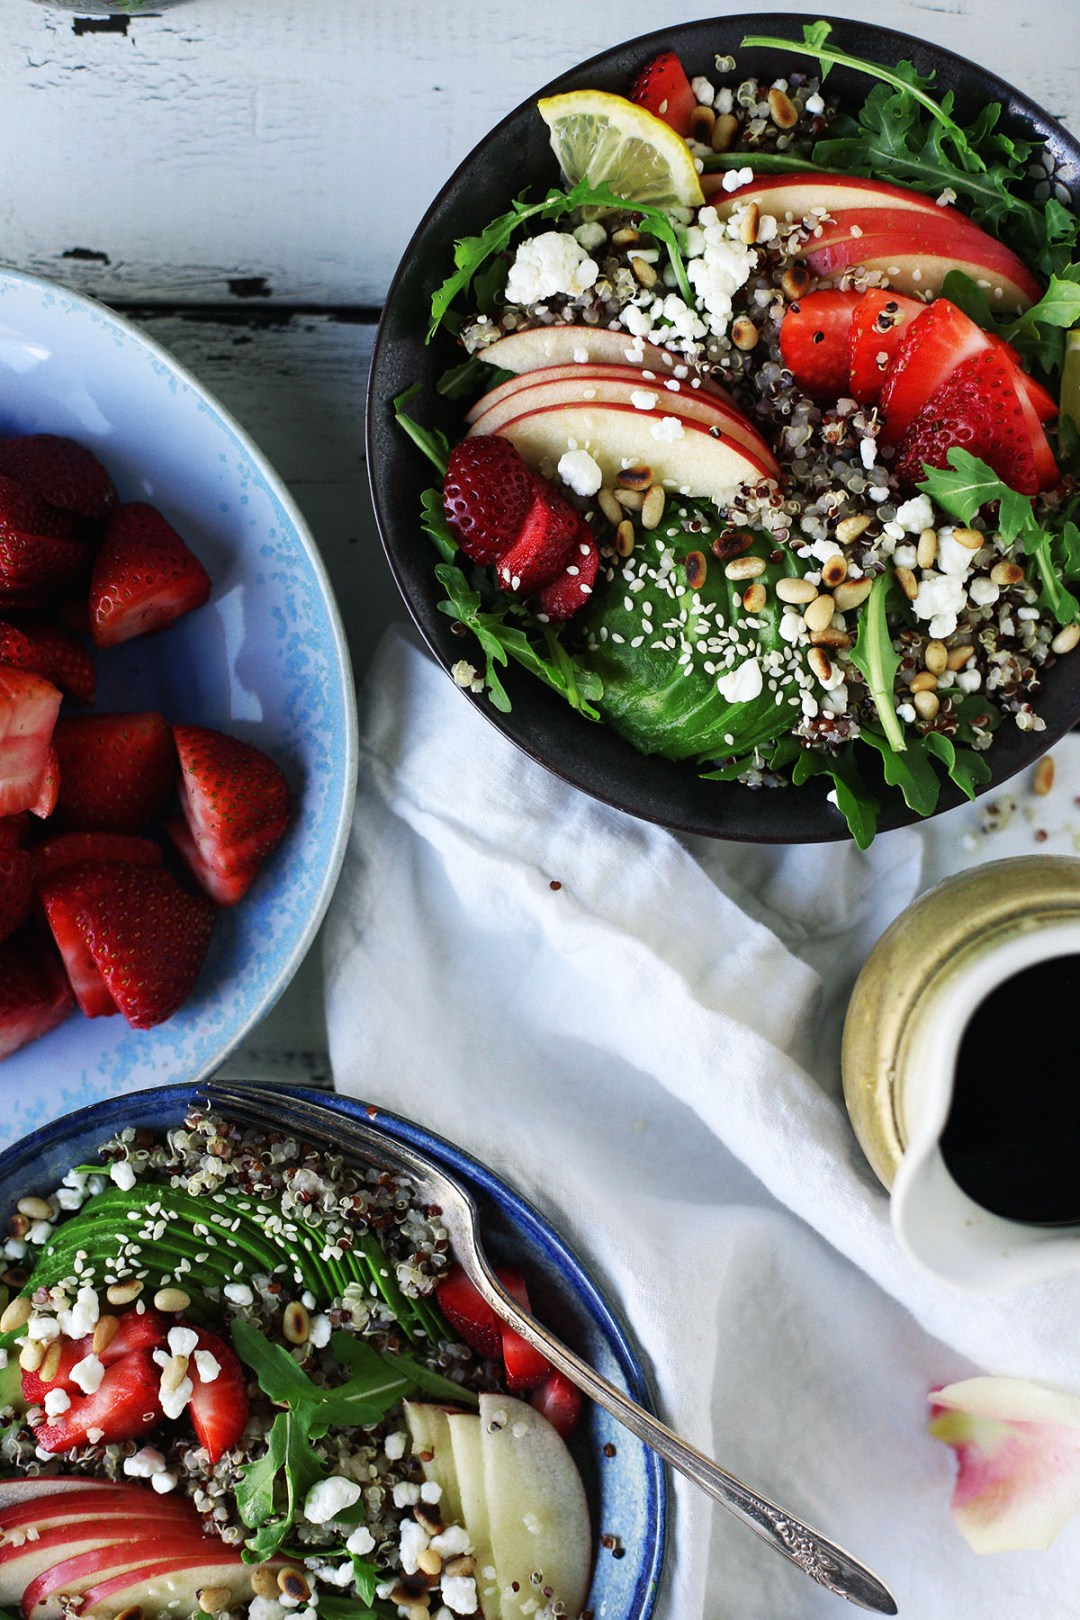 Strawberry Goat Cheese Quinoa and Arugula Salad With Balsamic Dressing